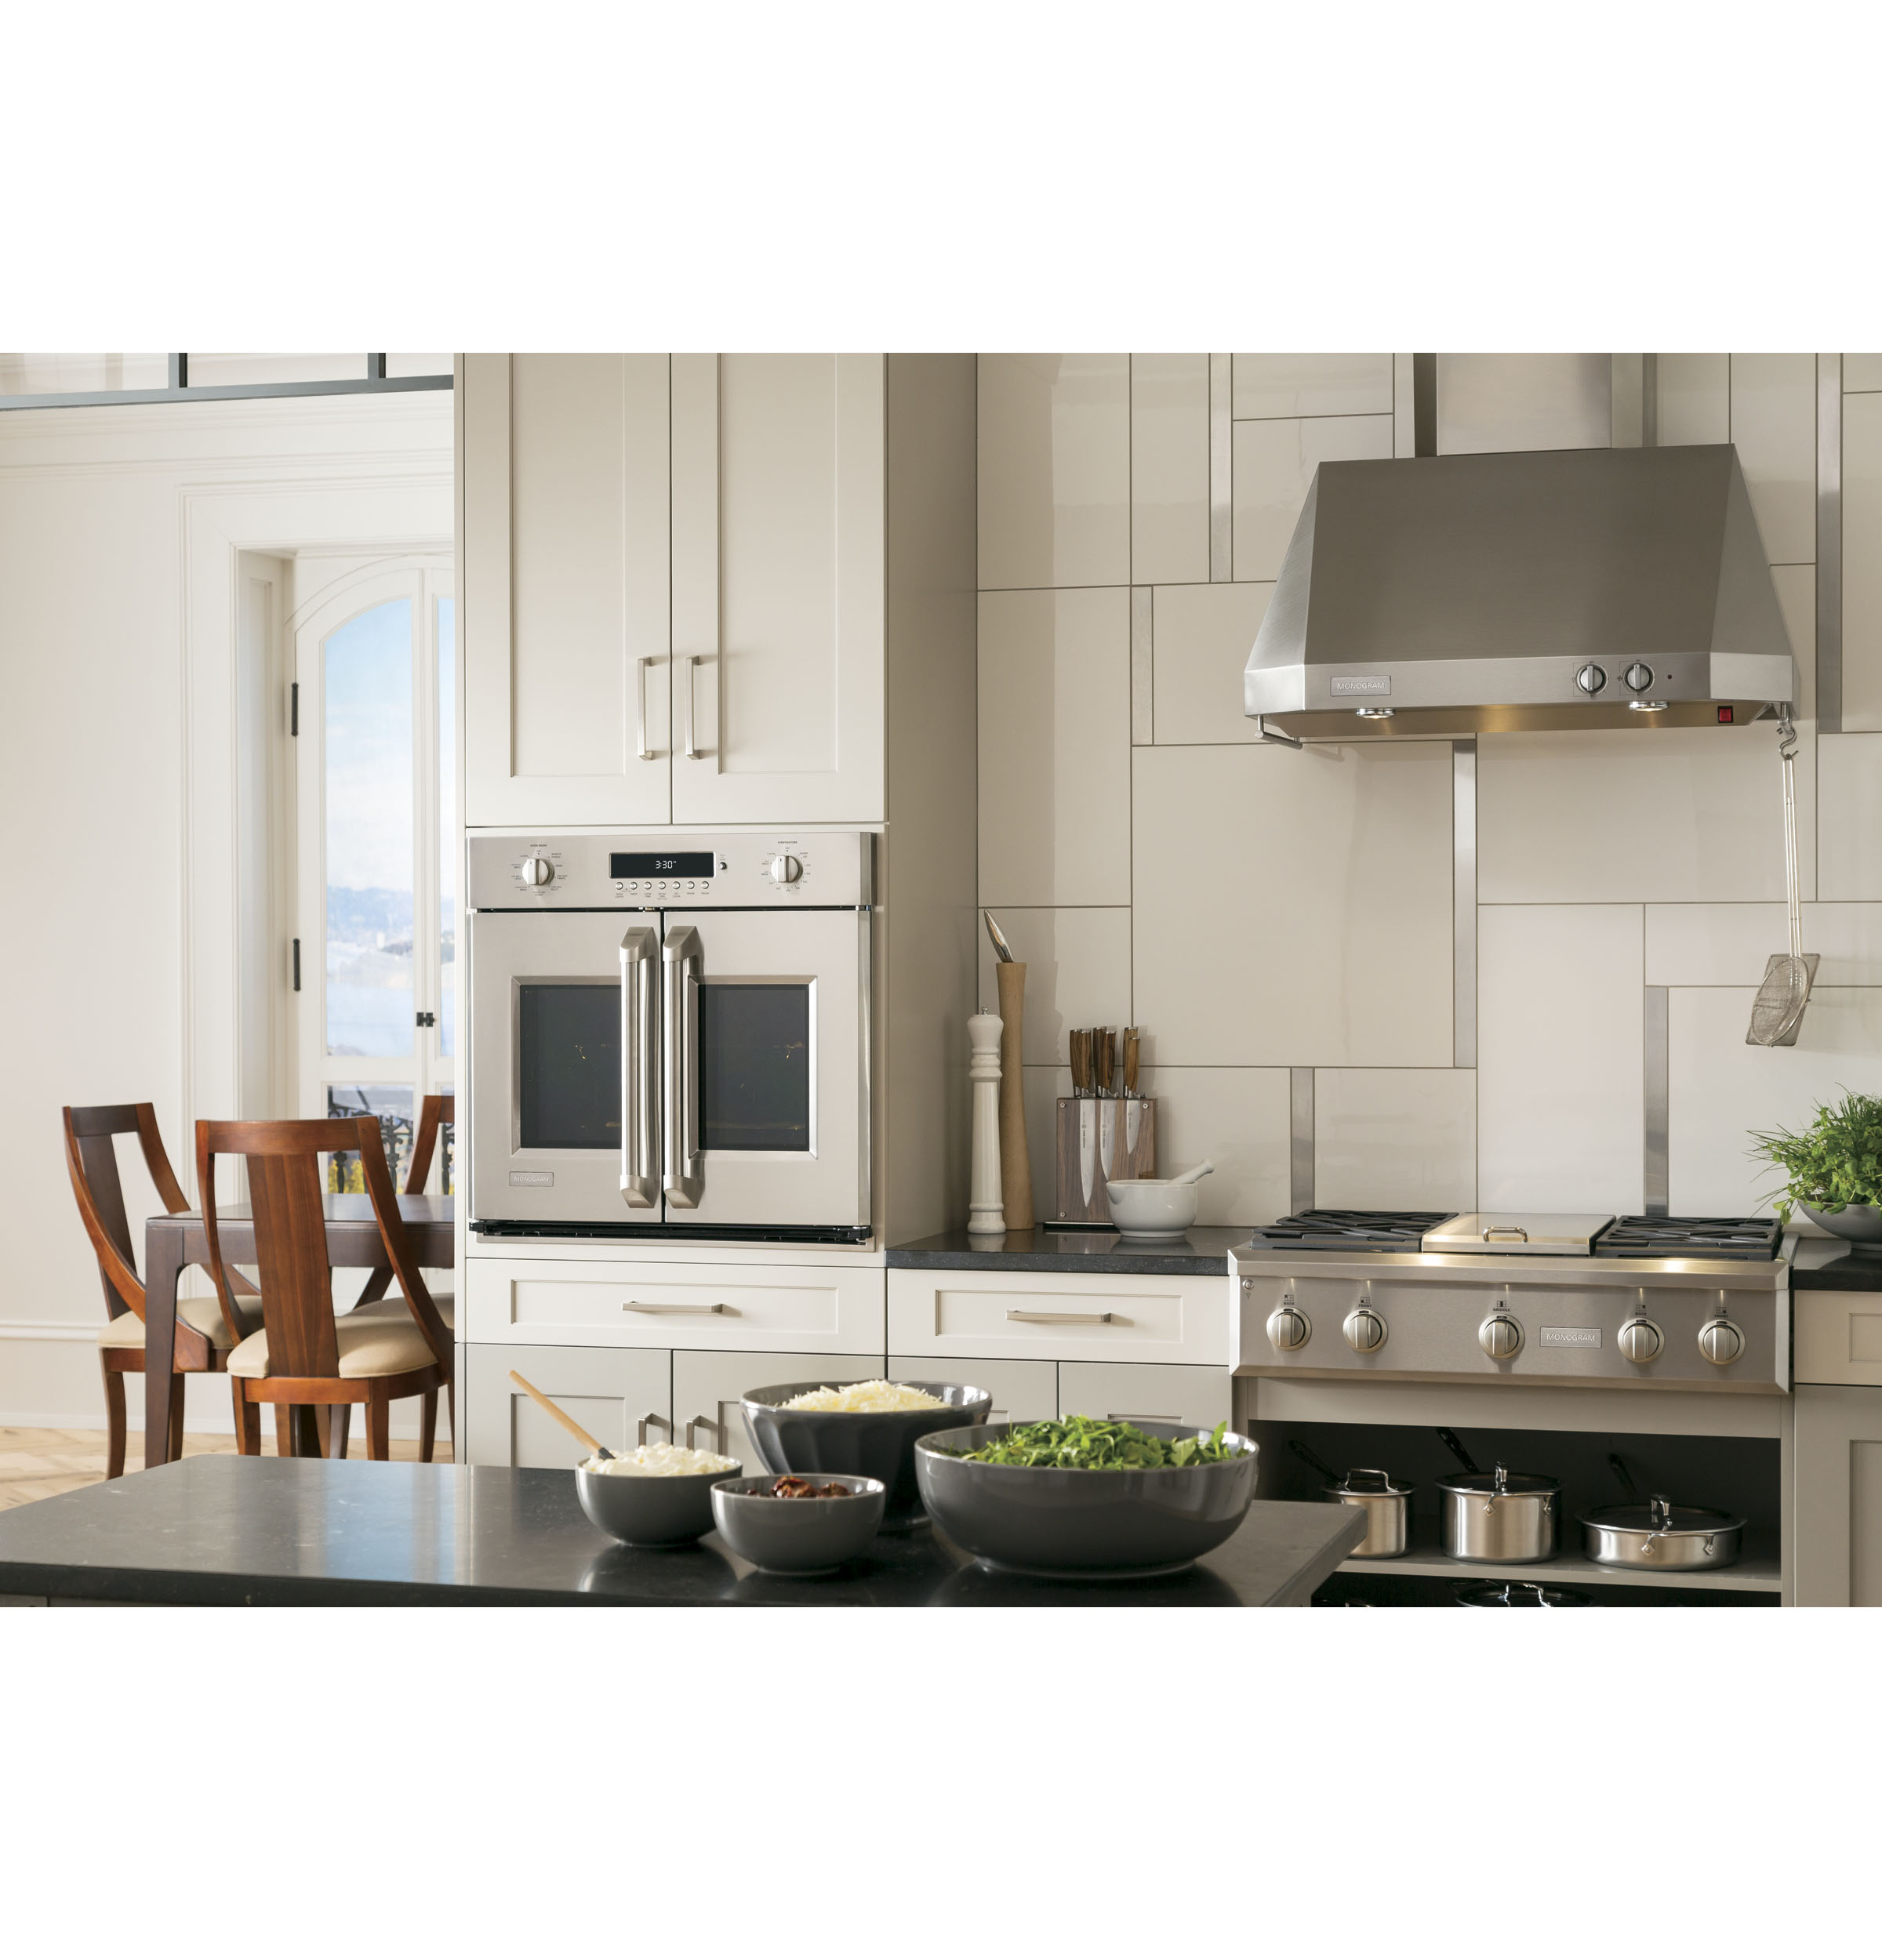 Kitchen With French Doors: New GE Monogram® French Door Wall Oven Puts Culinary